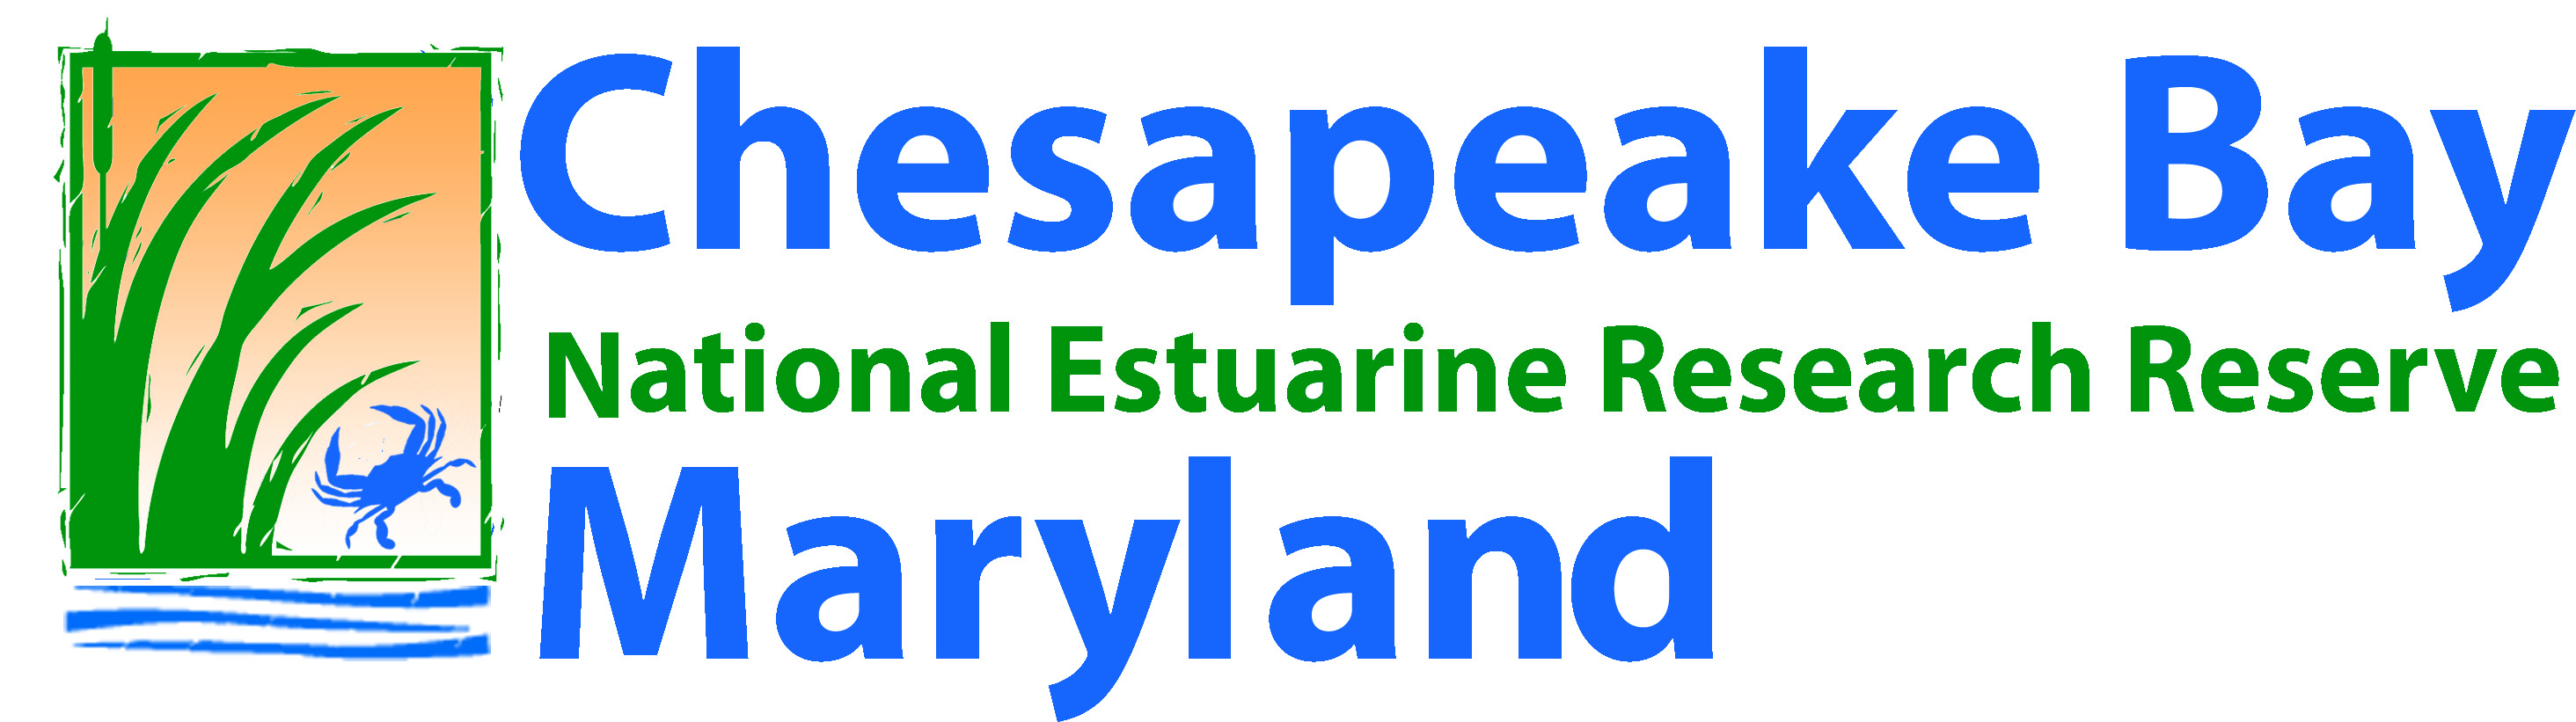 Chesapeake Bay National Estuarine Reserve Maryland logo